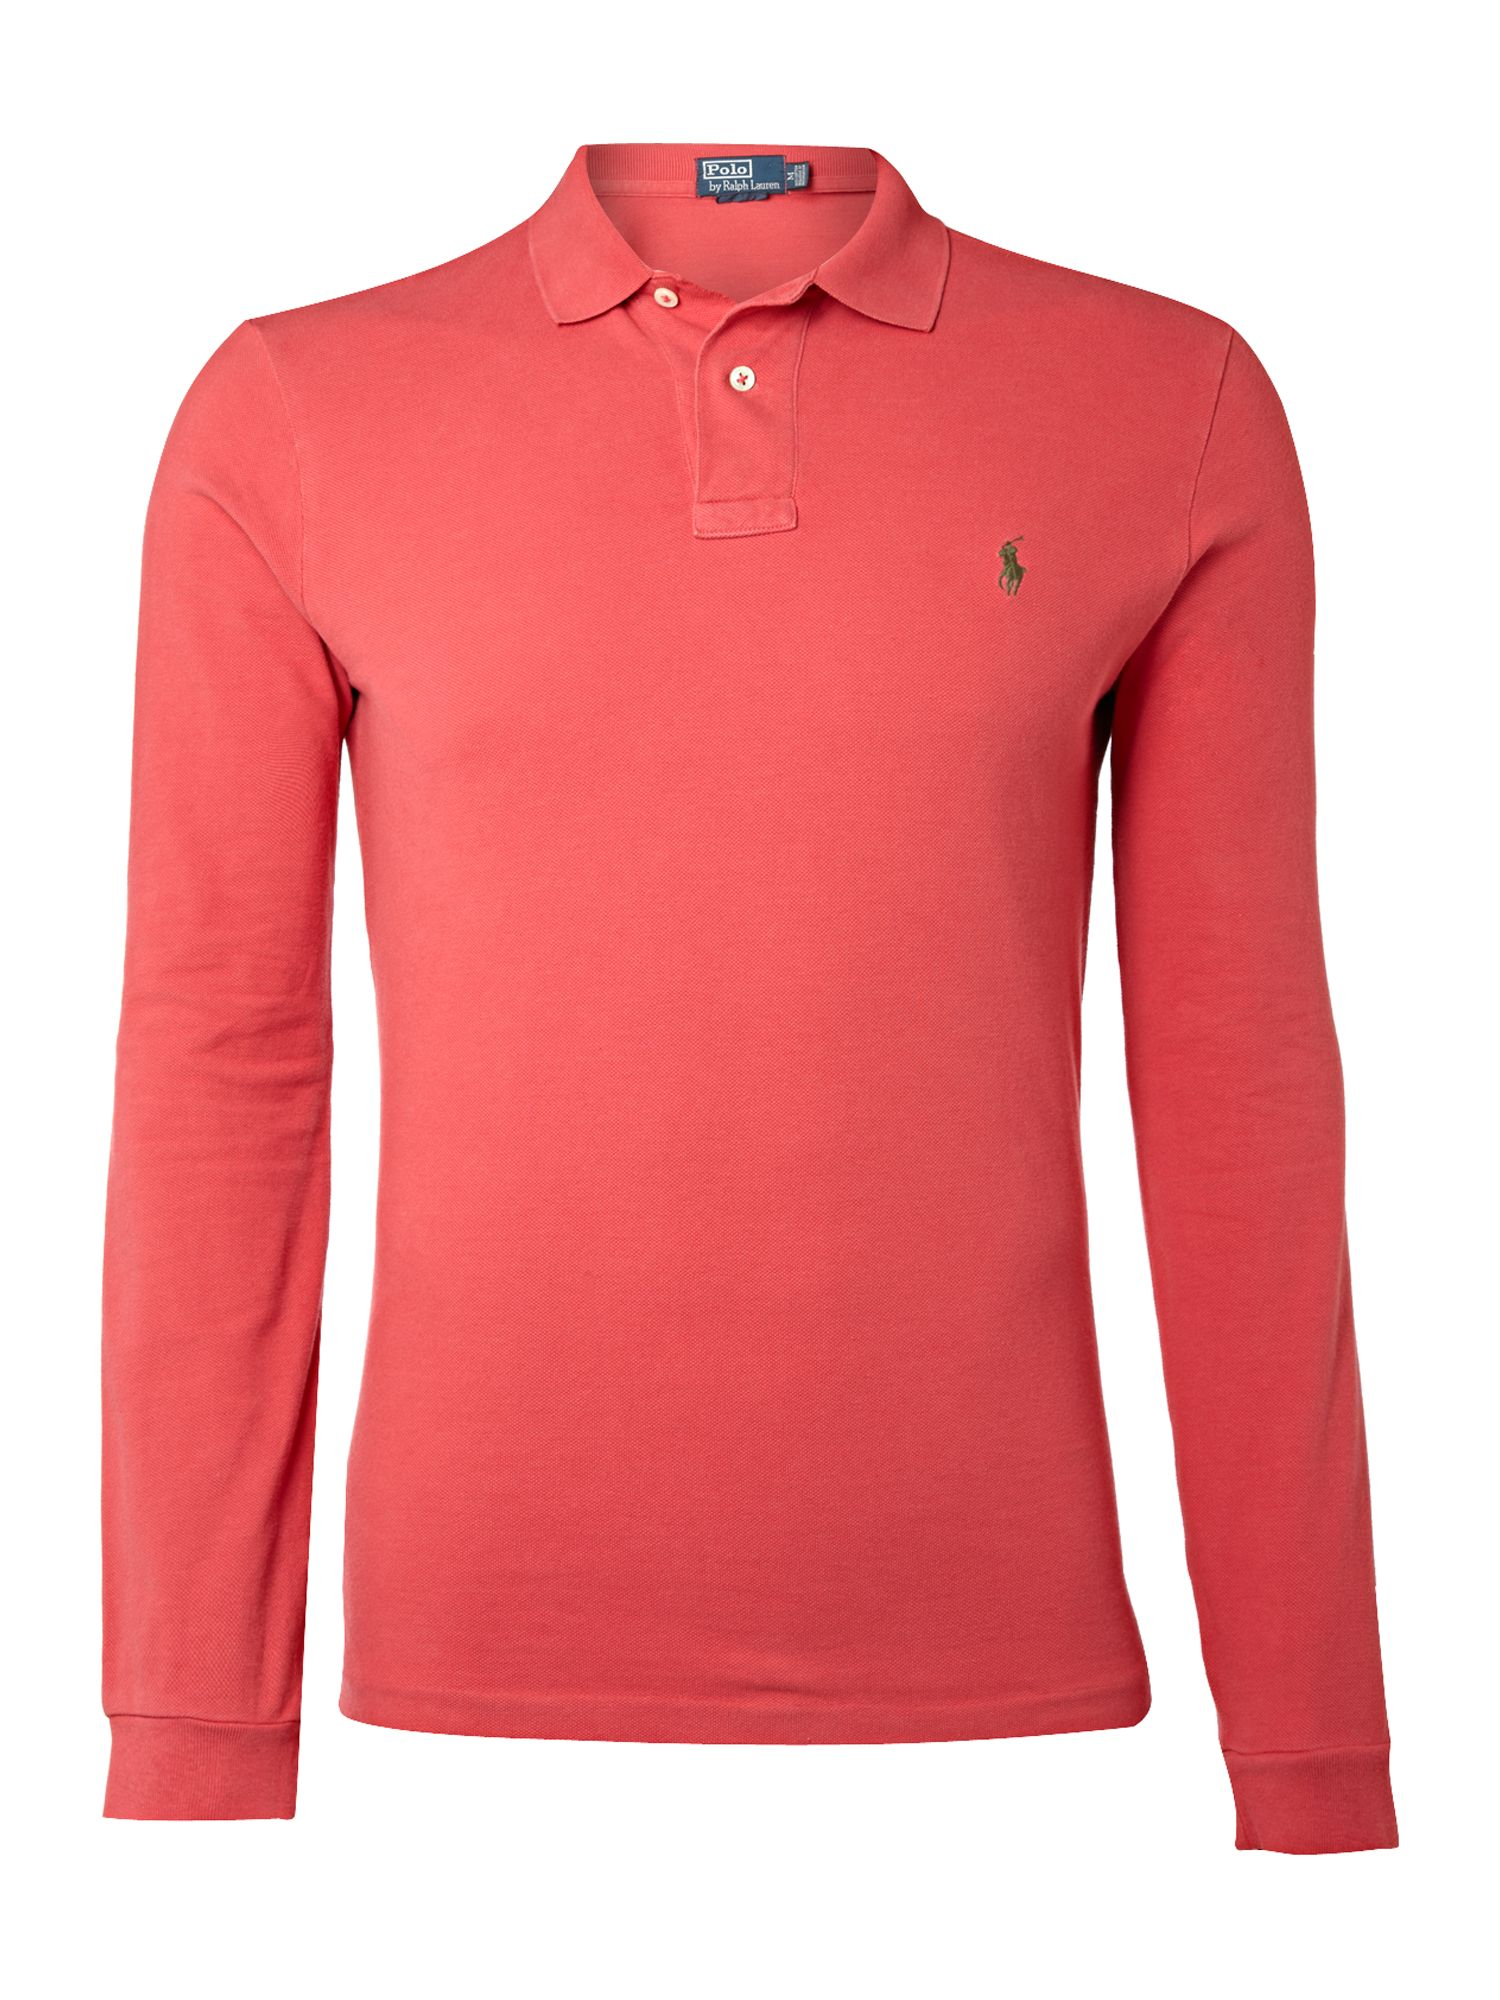 Polo ralph lauren weathered mesh long sleeve custom fit for Custom long sleeve shirts cheap